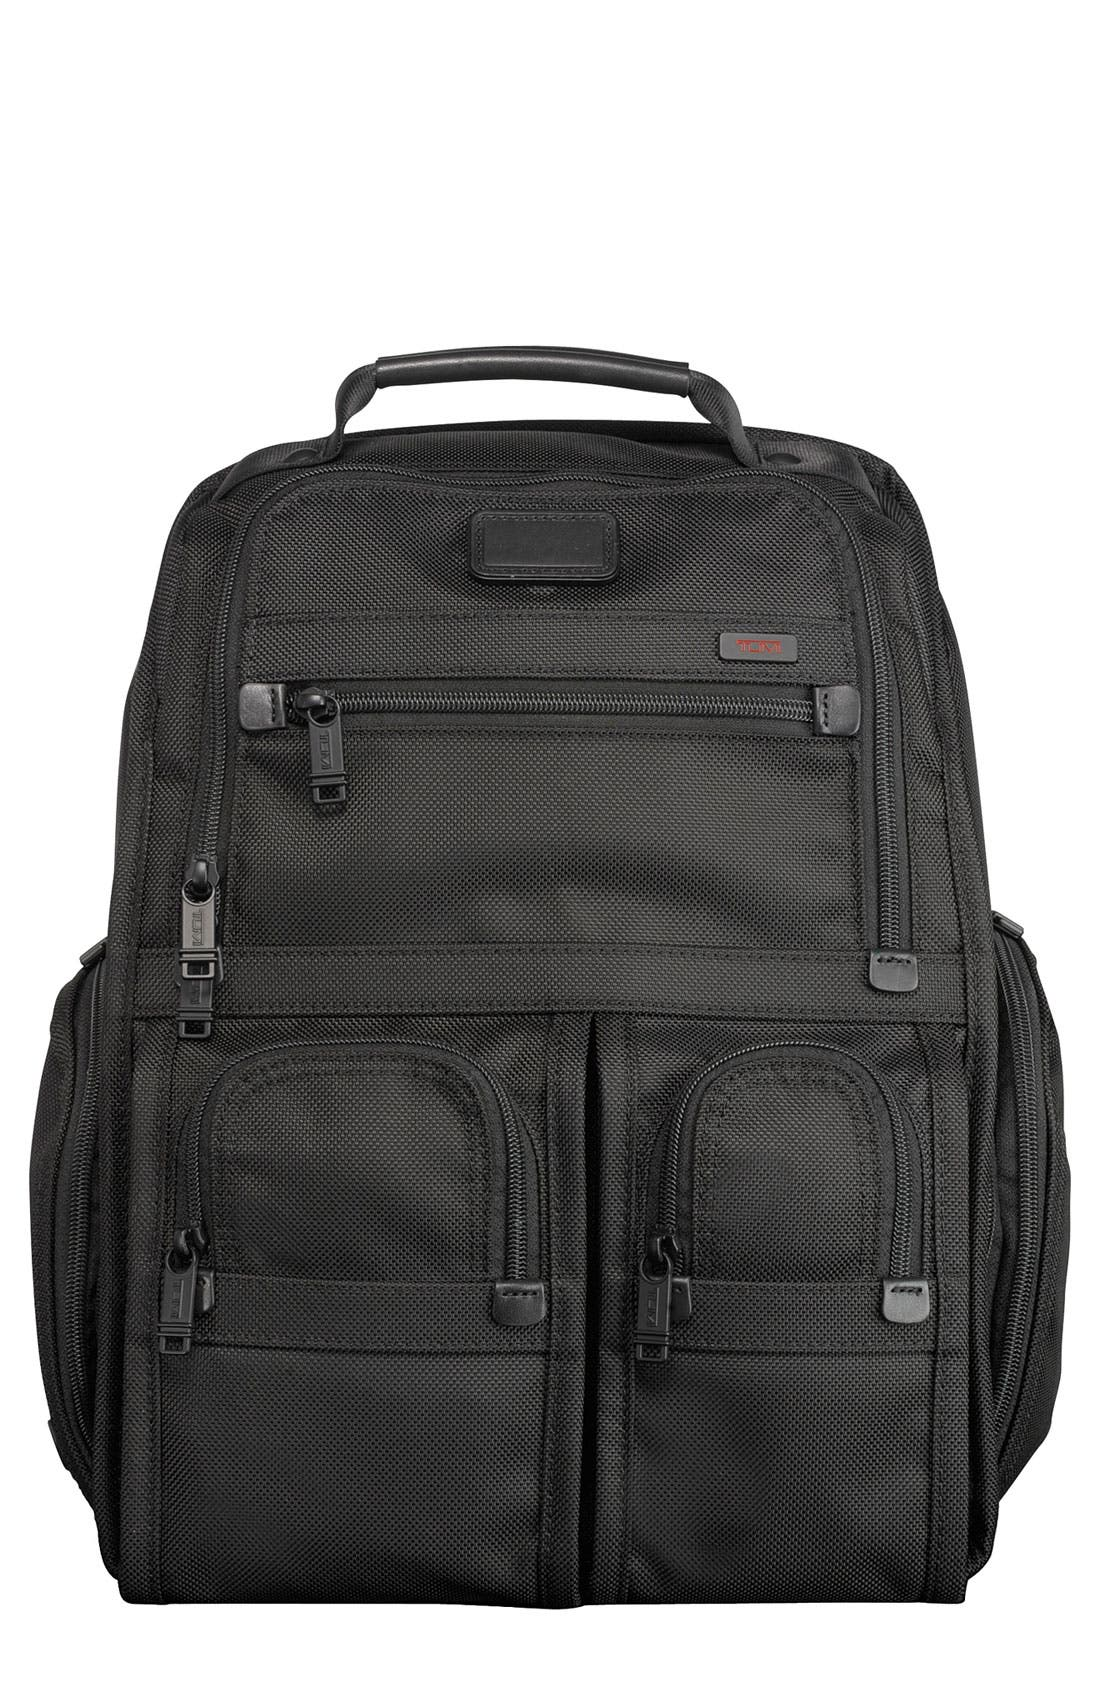 Main Image - Tumi 'Alpha' Compact Laptop BriefPack®